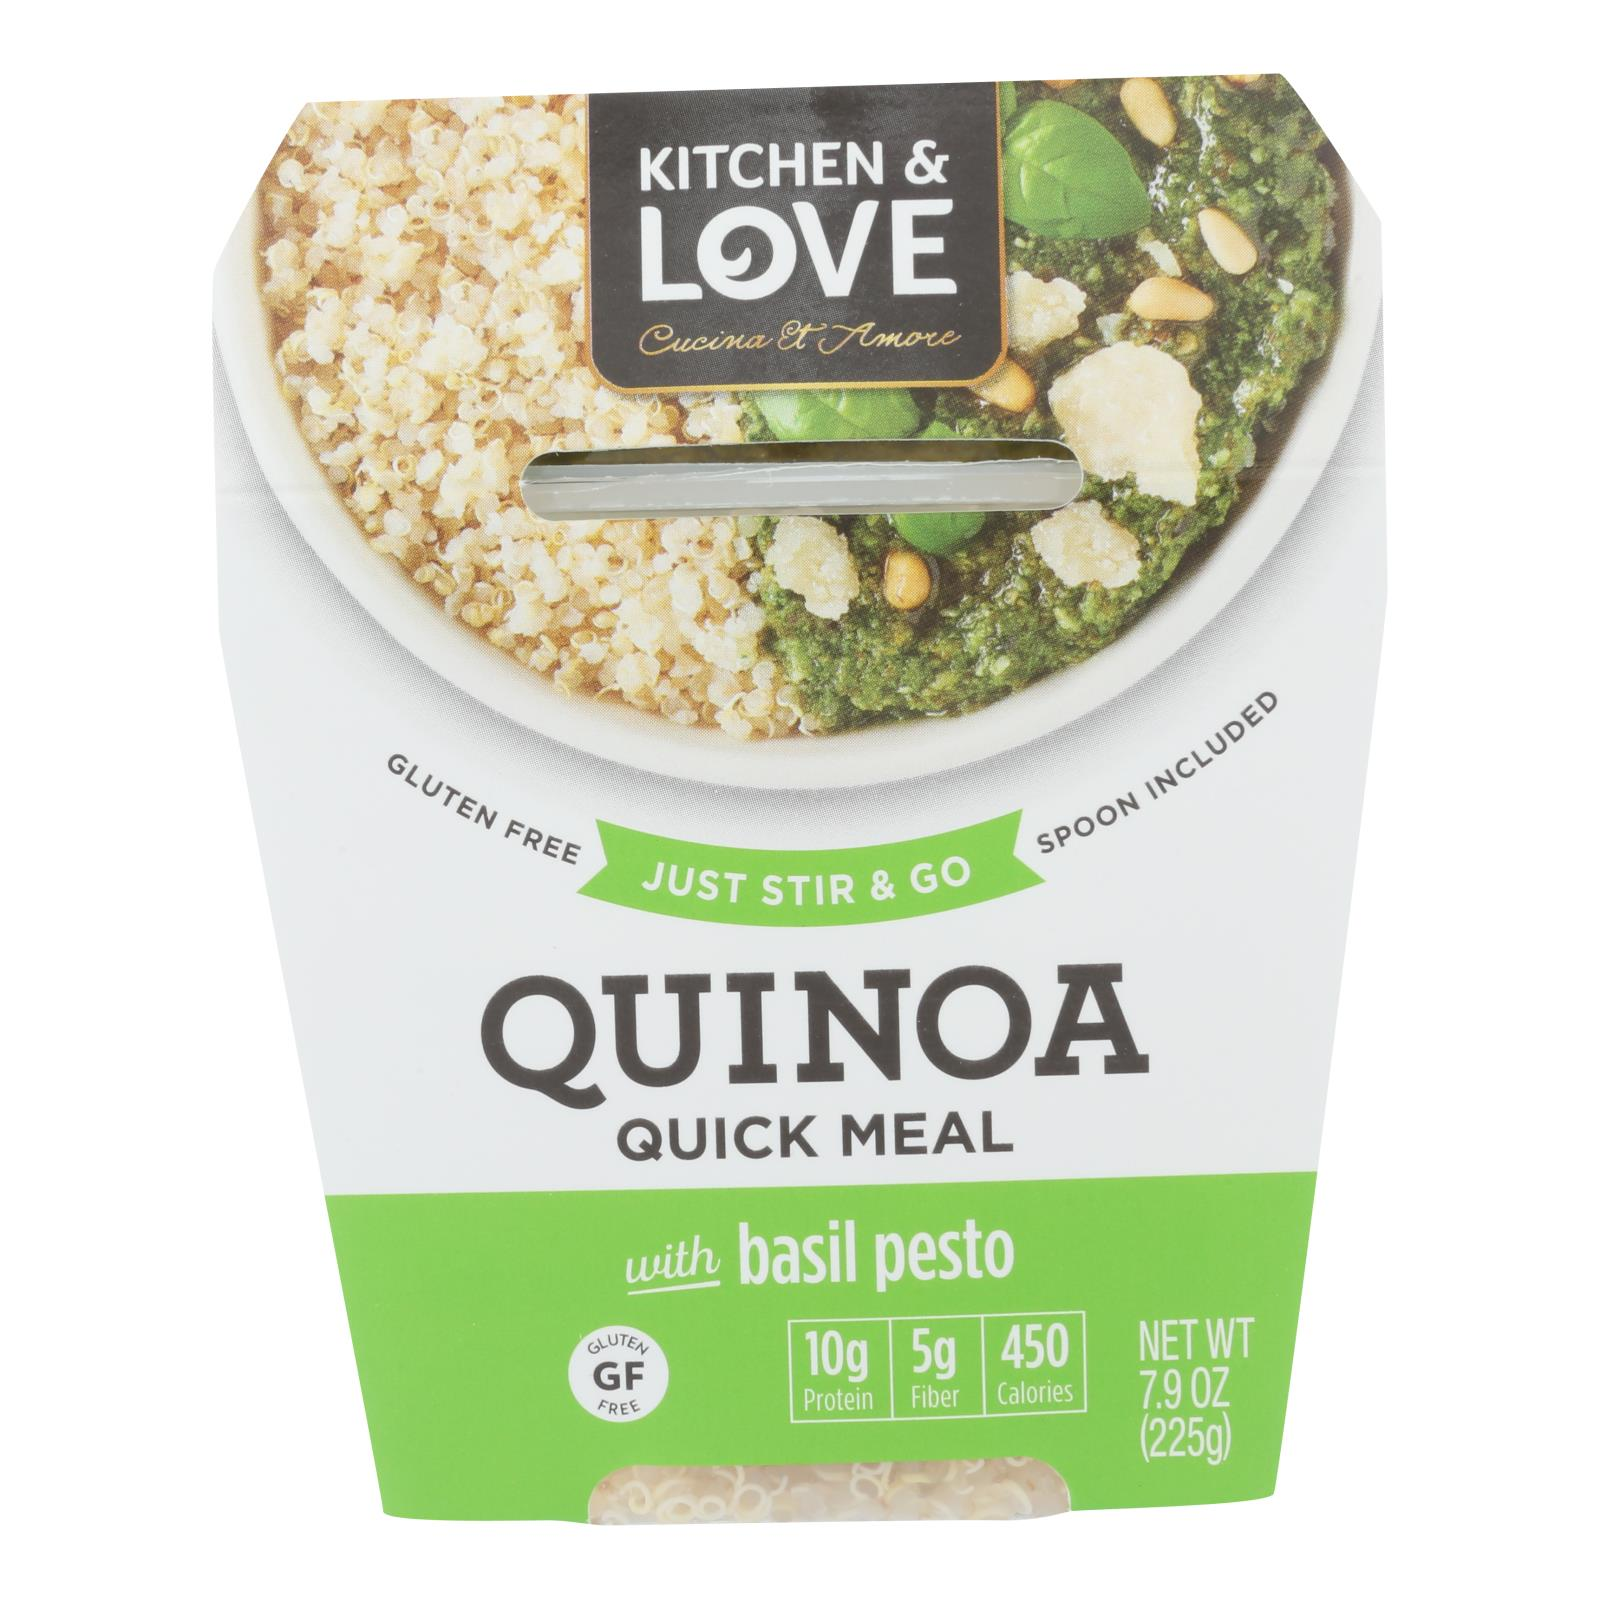 Cucina And Amore Pesto Details About Cucina And Amore Quinoa Meals Basil Pesto Case Of 6 7 9 Oz